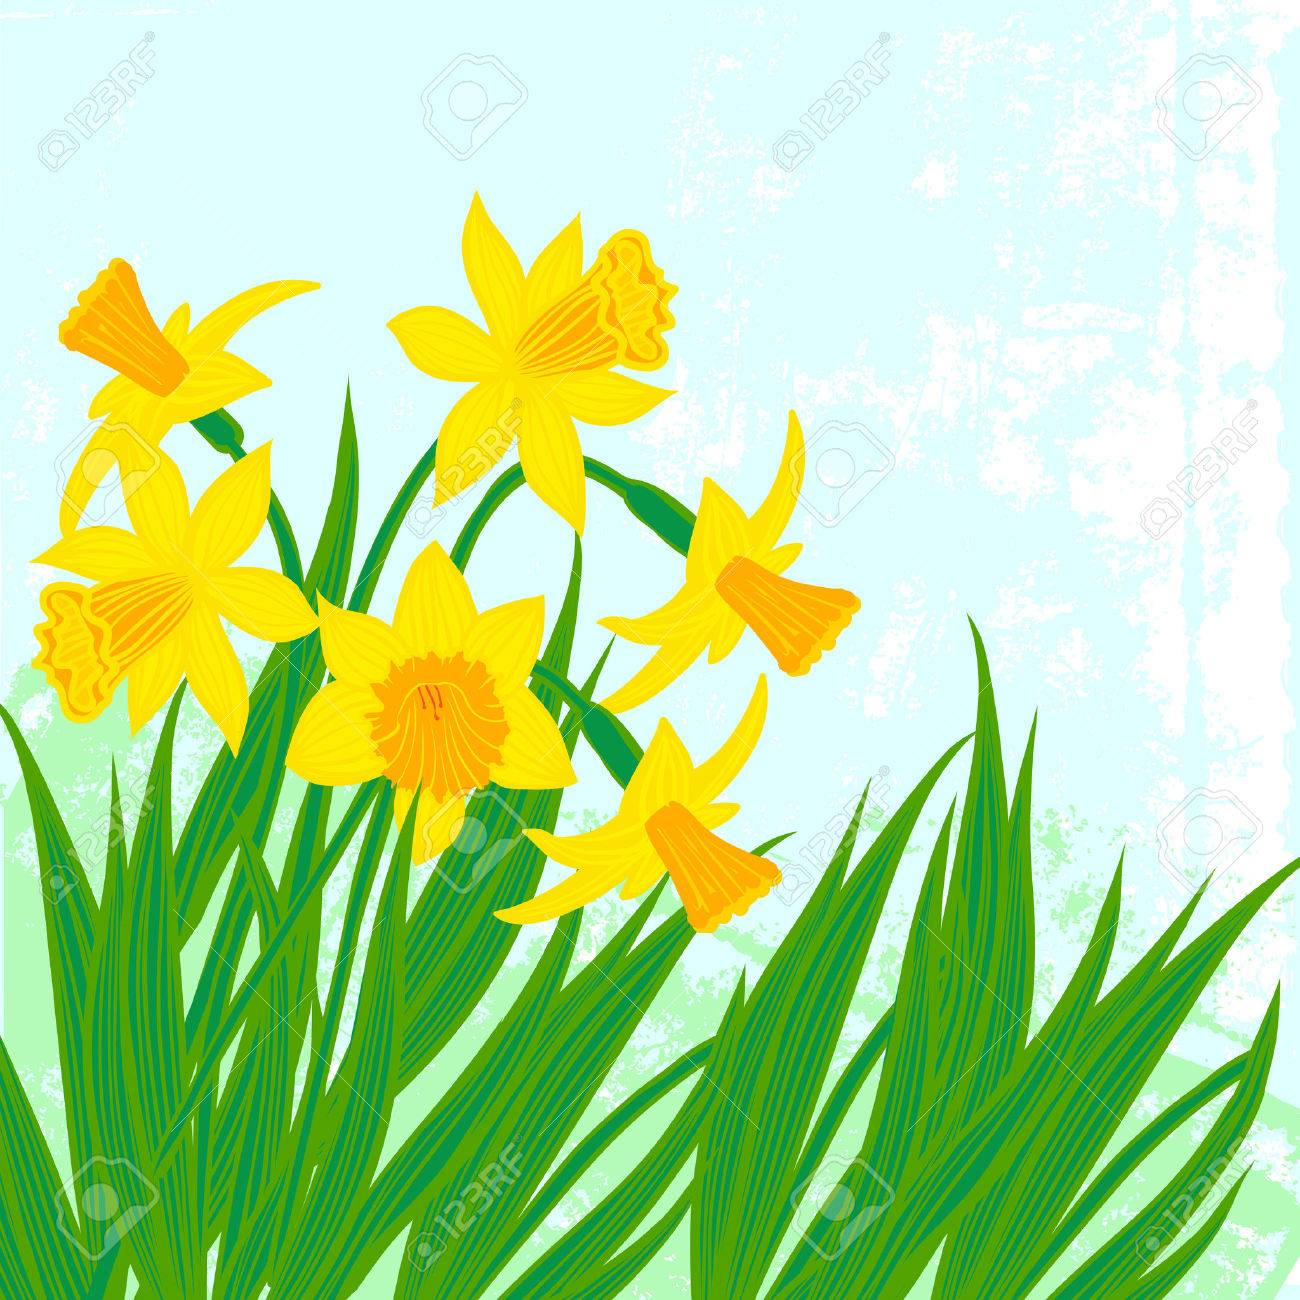 vector card with daffodils on textured background template for